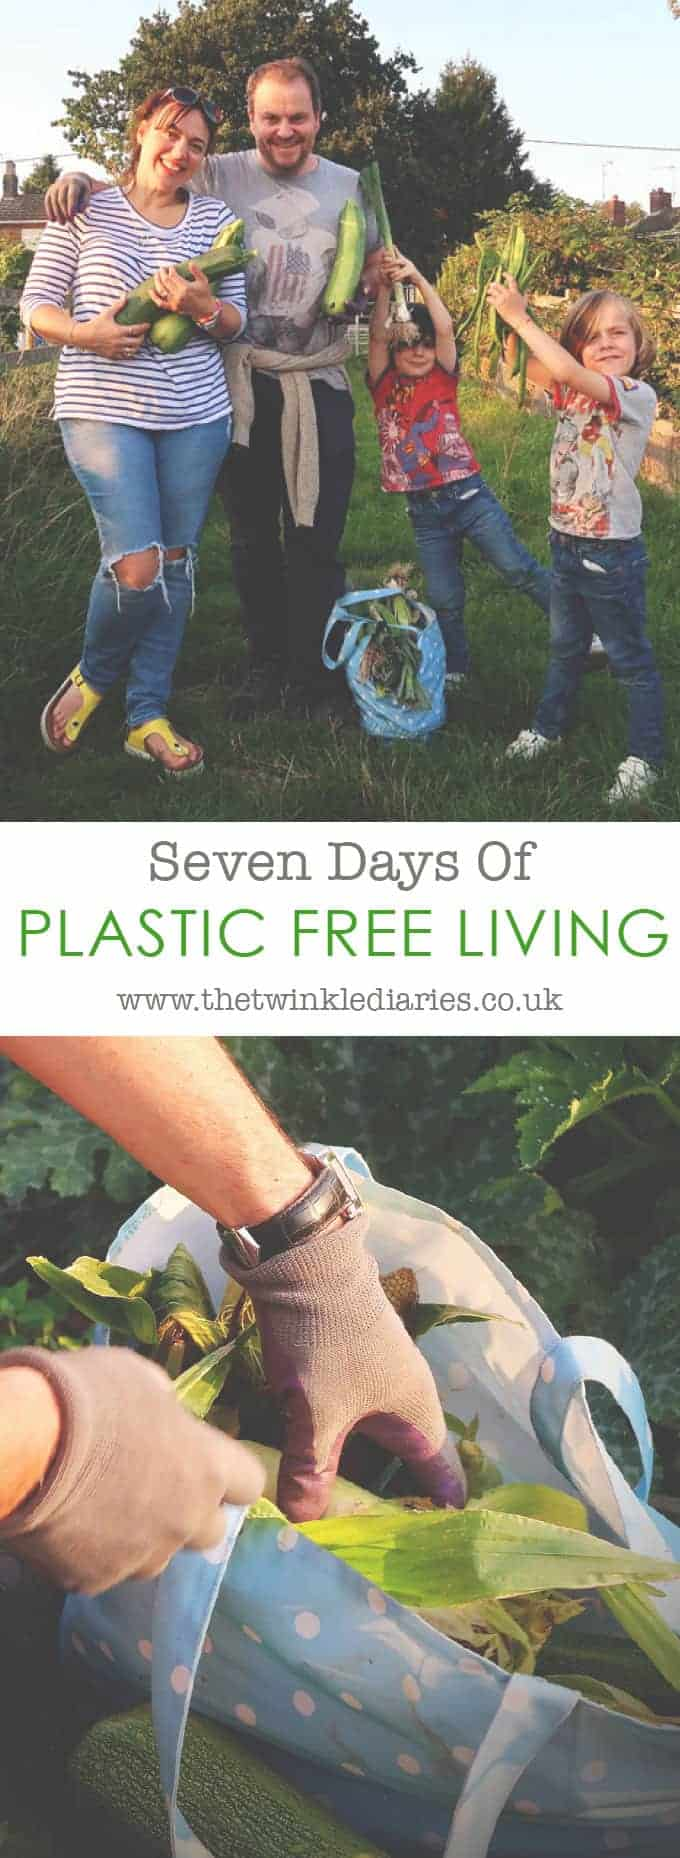 7 Days of Plastic Free Living — The Howdens Sustainability Challenge